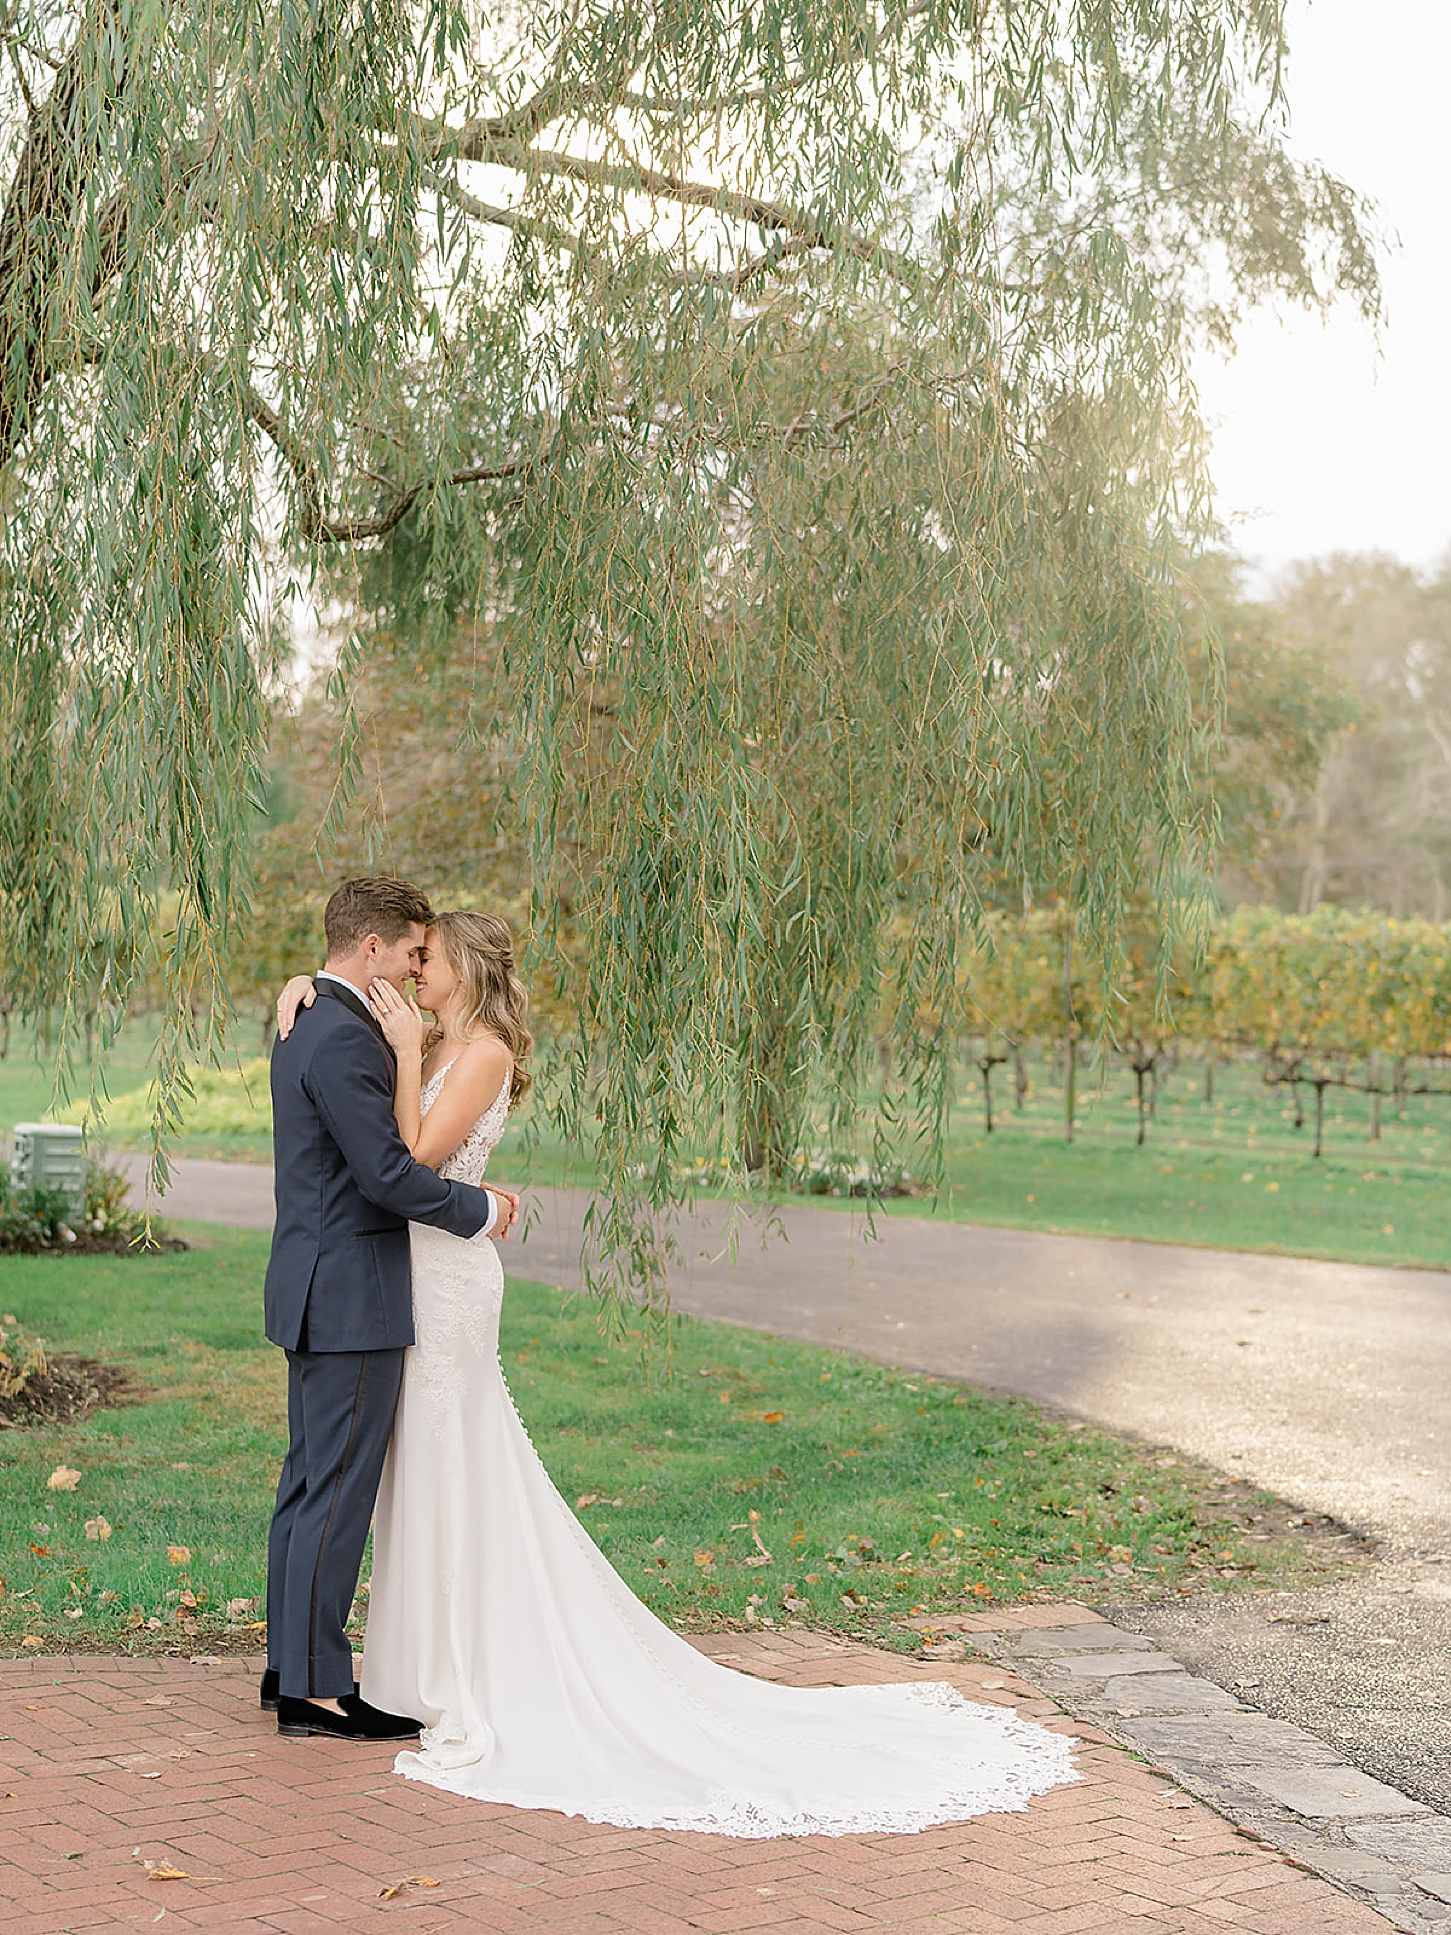 Willow Creek Winery Wedding Photography by Magdalena Studios Marybeth 0035